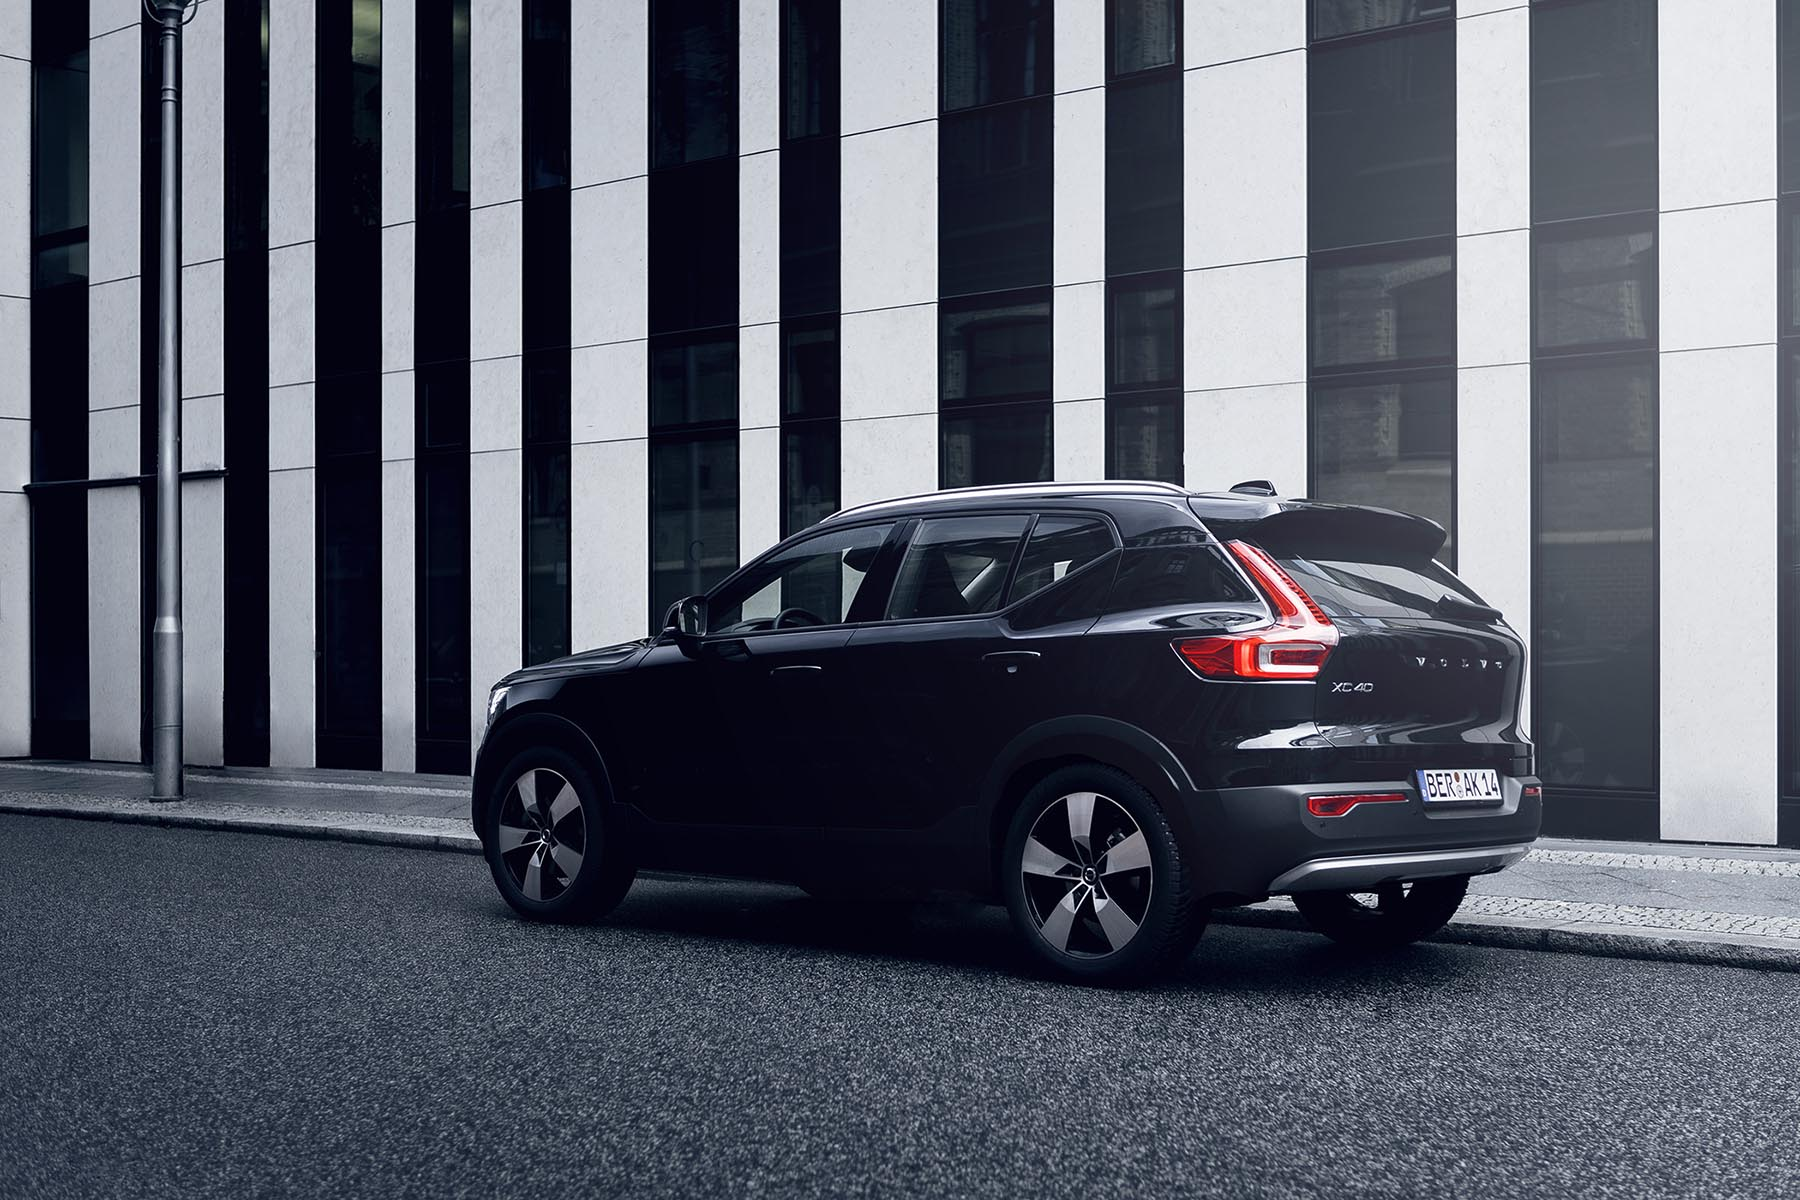 181109_Volvo_XC40_by_Mirko_Westerbrink 2_014 copy